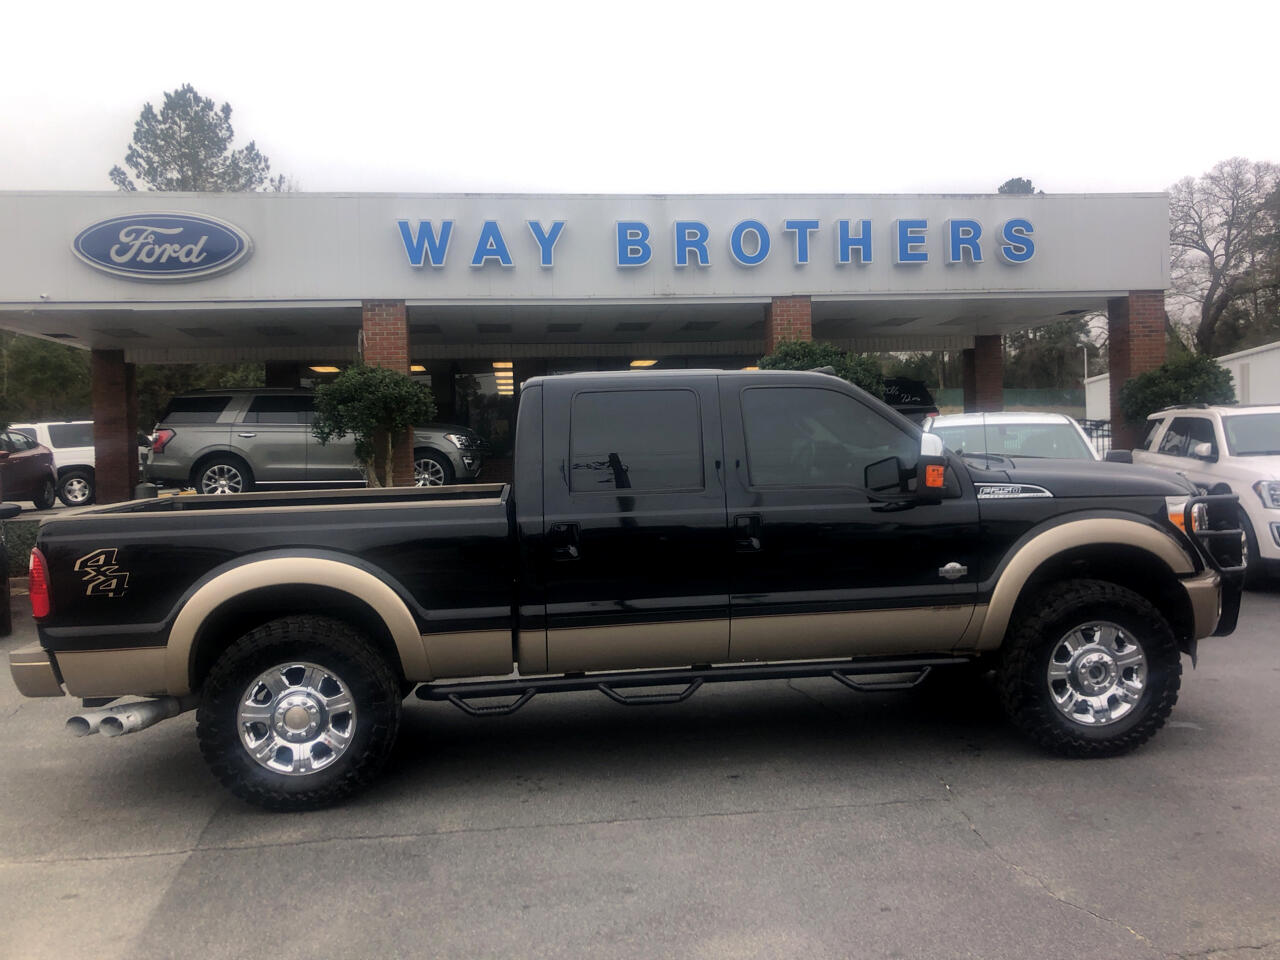 2012 Ford F-250 SD Crew Cab Short Bed Harley Davidson